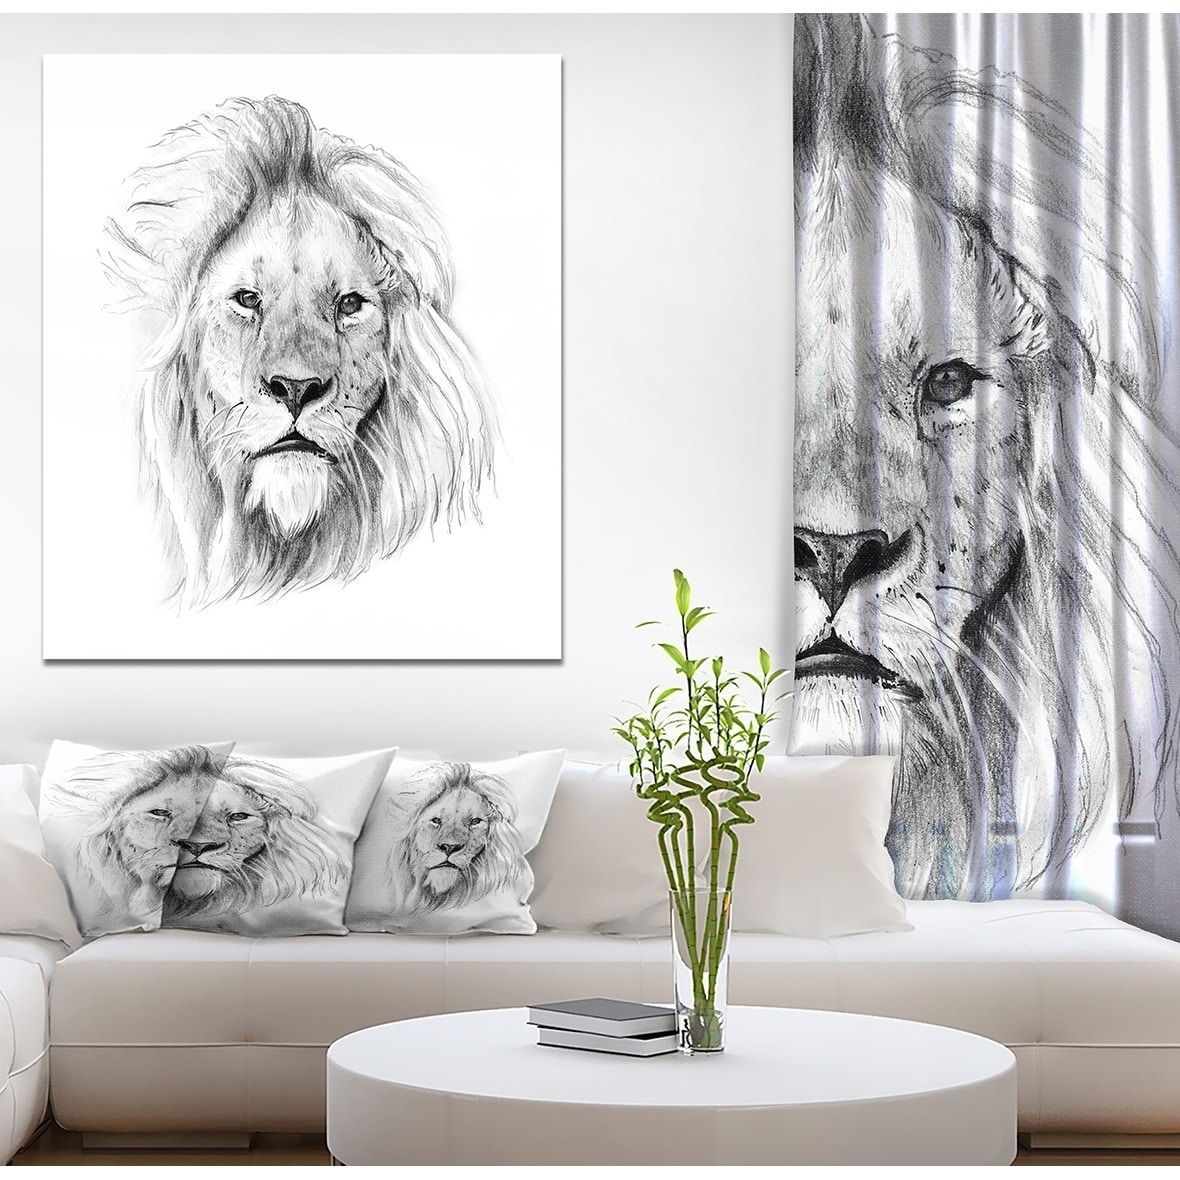 Designart pencil lion sketch in black and white animals painting print on wrapped canvas white